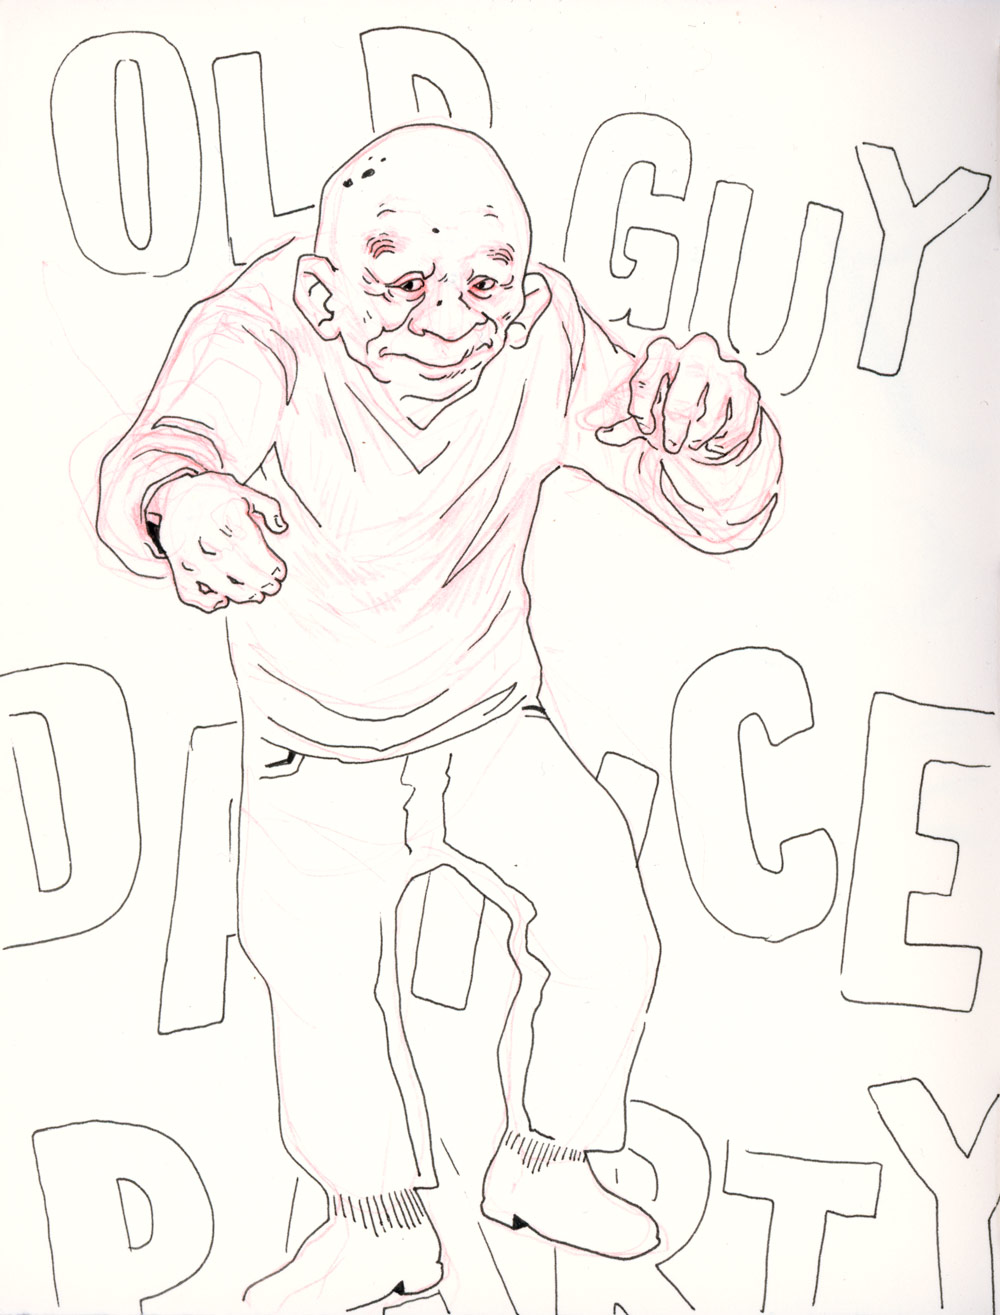 old-guy-dance-party.jpg